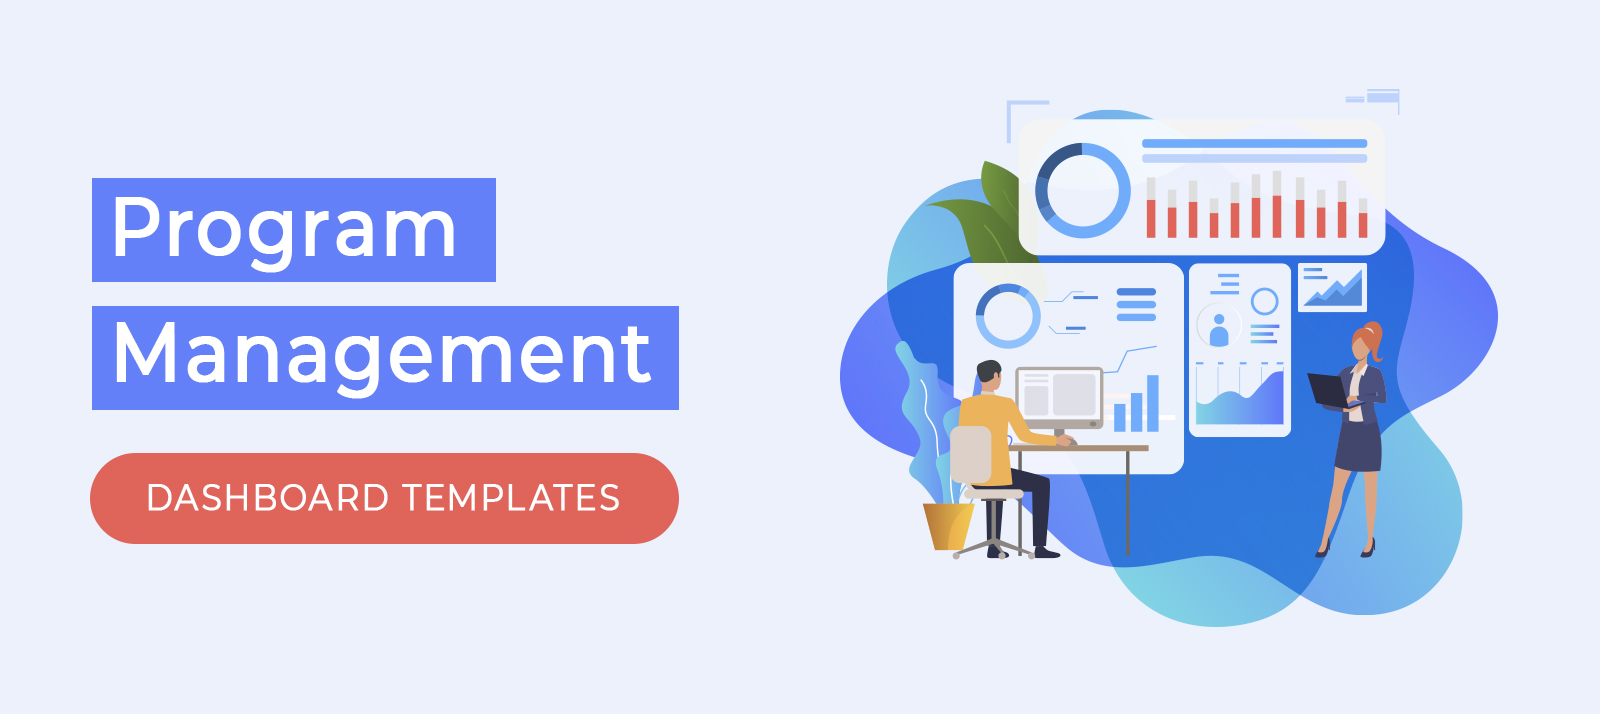 25+ Modern and Powerful Program Management Dashboard Templates That Are Worth Checking Out